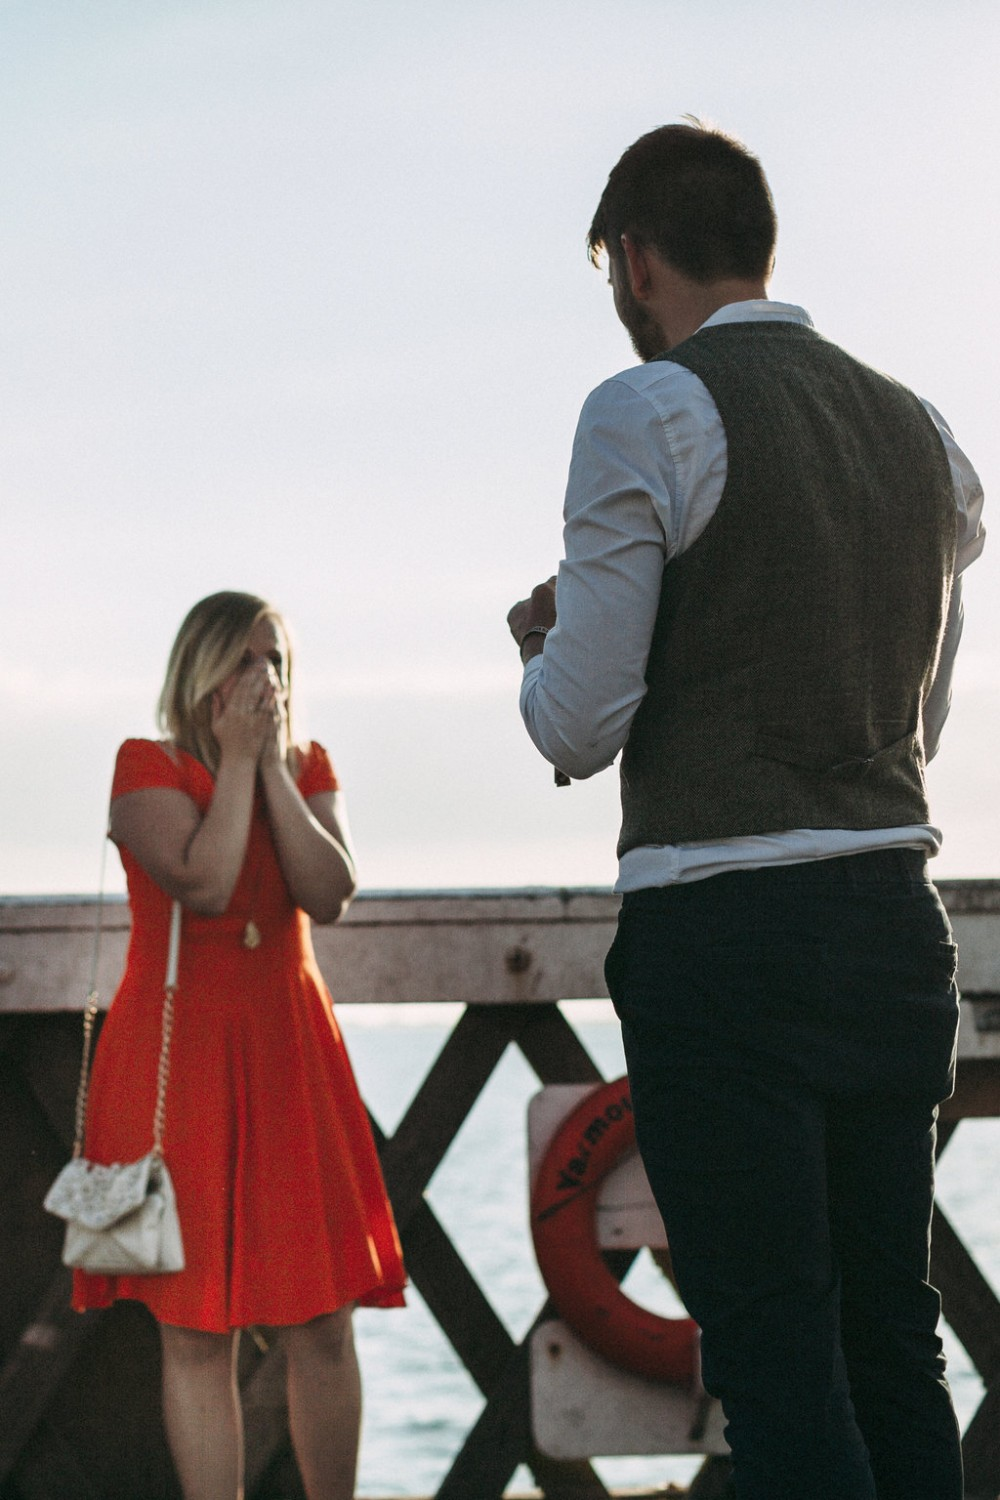 Image 9 of Lou and Tim's Adorable Proposal Video